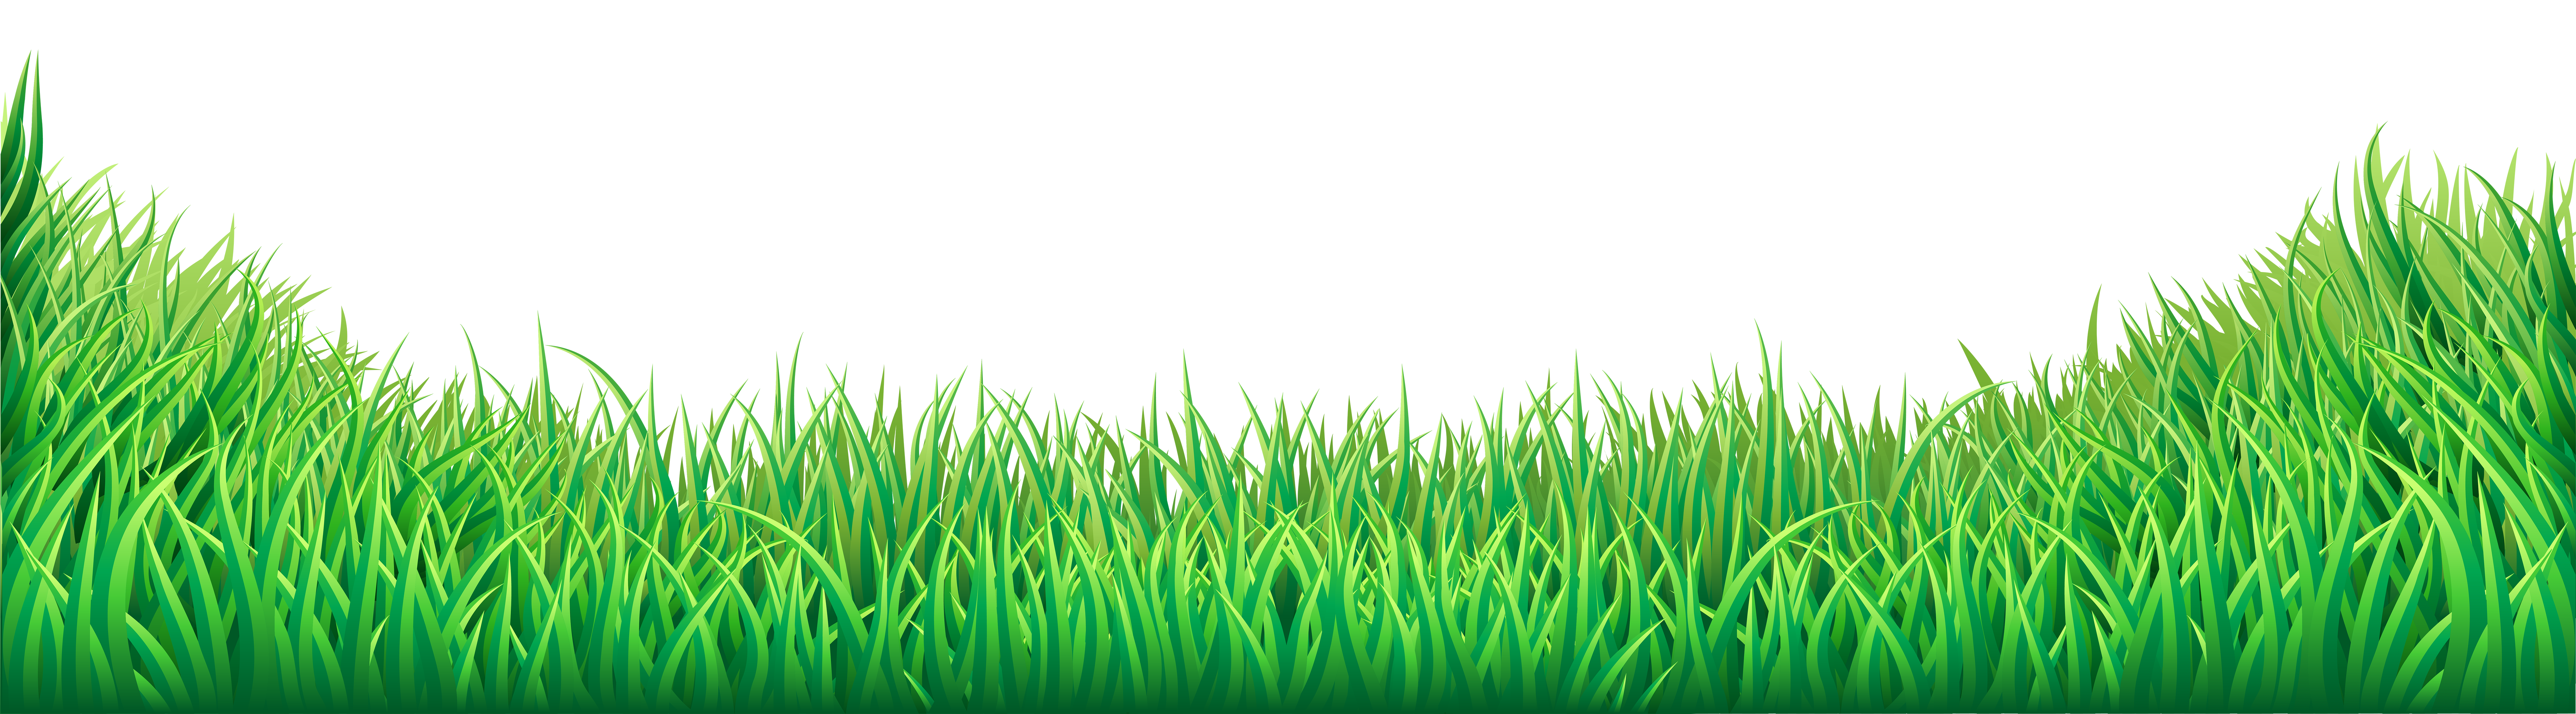 Sun and grass clipart picture freeuse Grass PNG Transparent Clip Art Image | Gallery Yopriceville - High ... picture freeuse